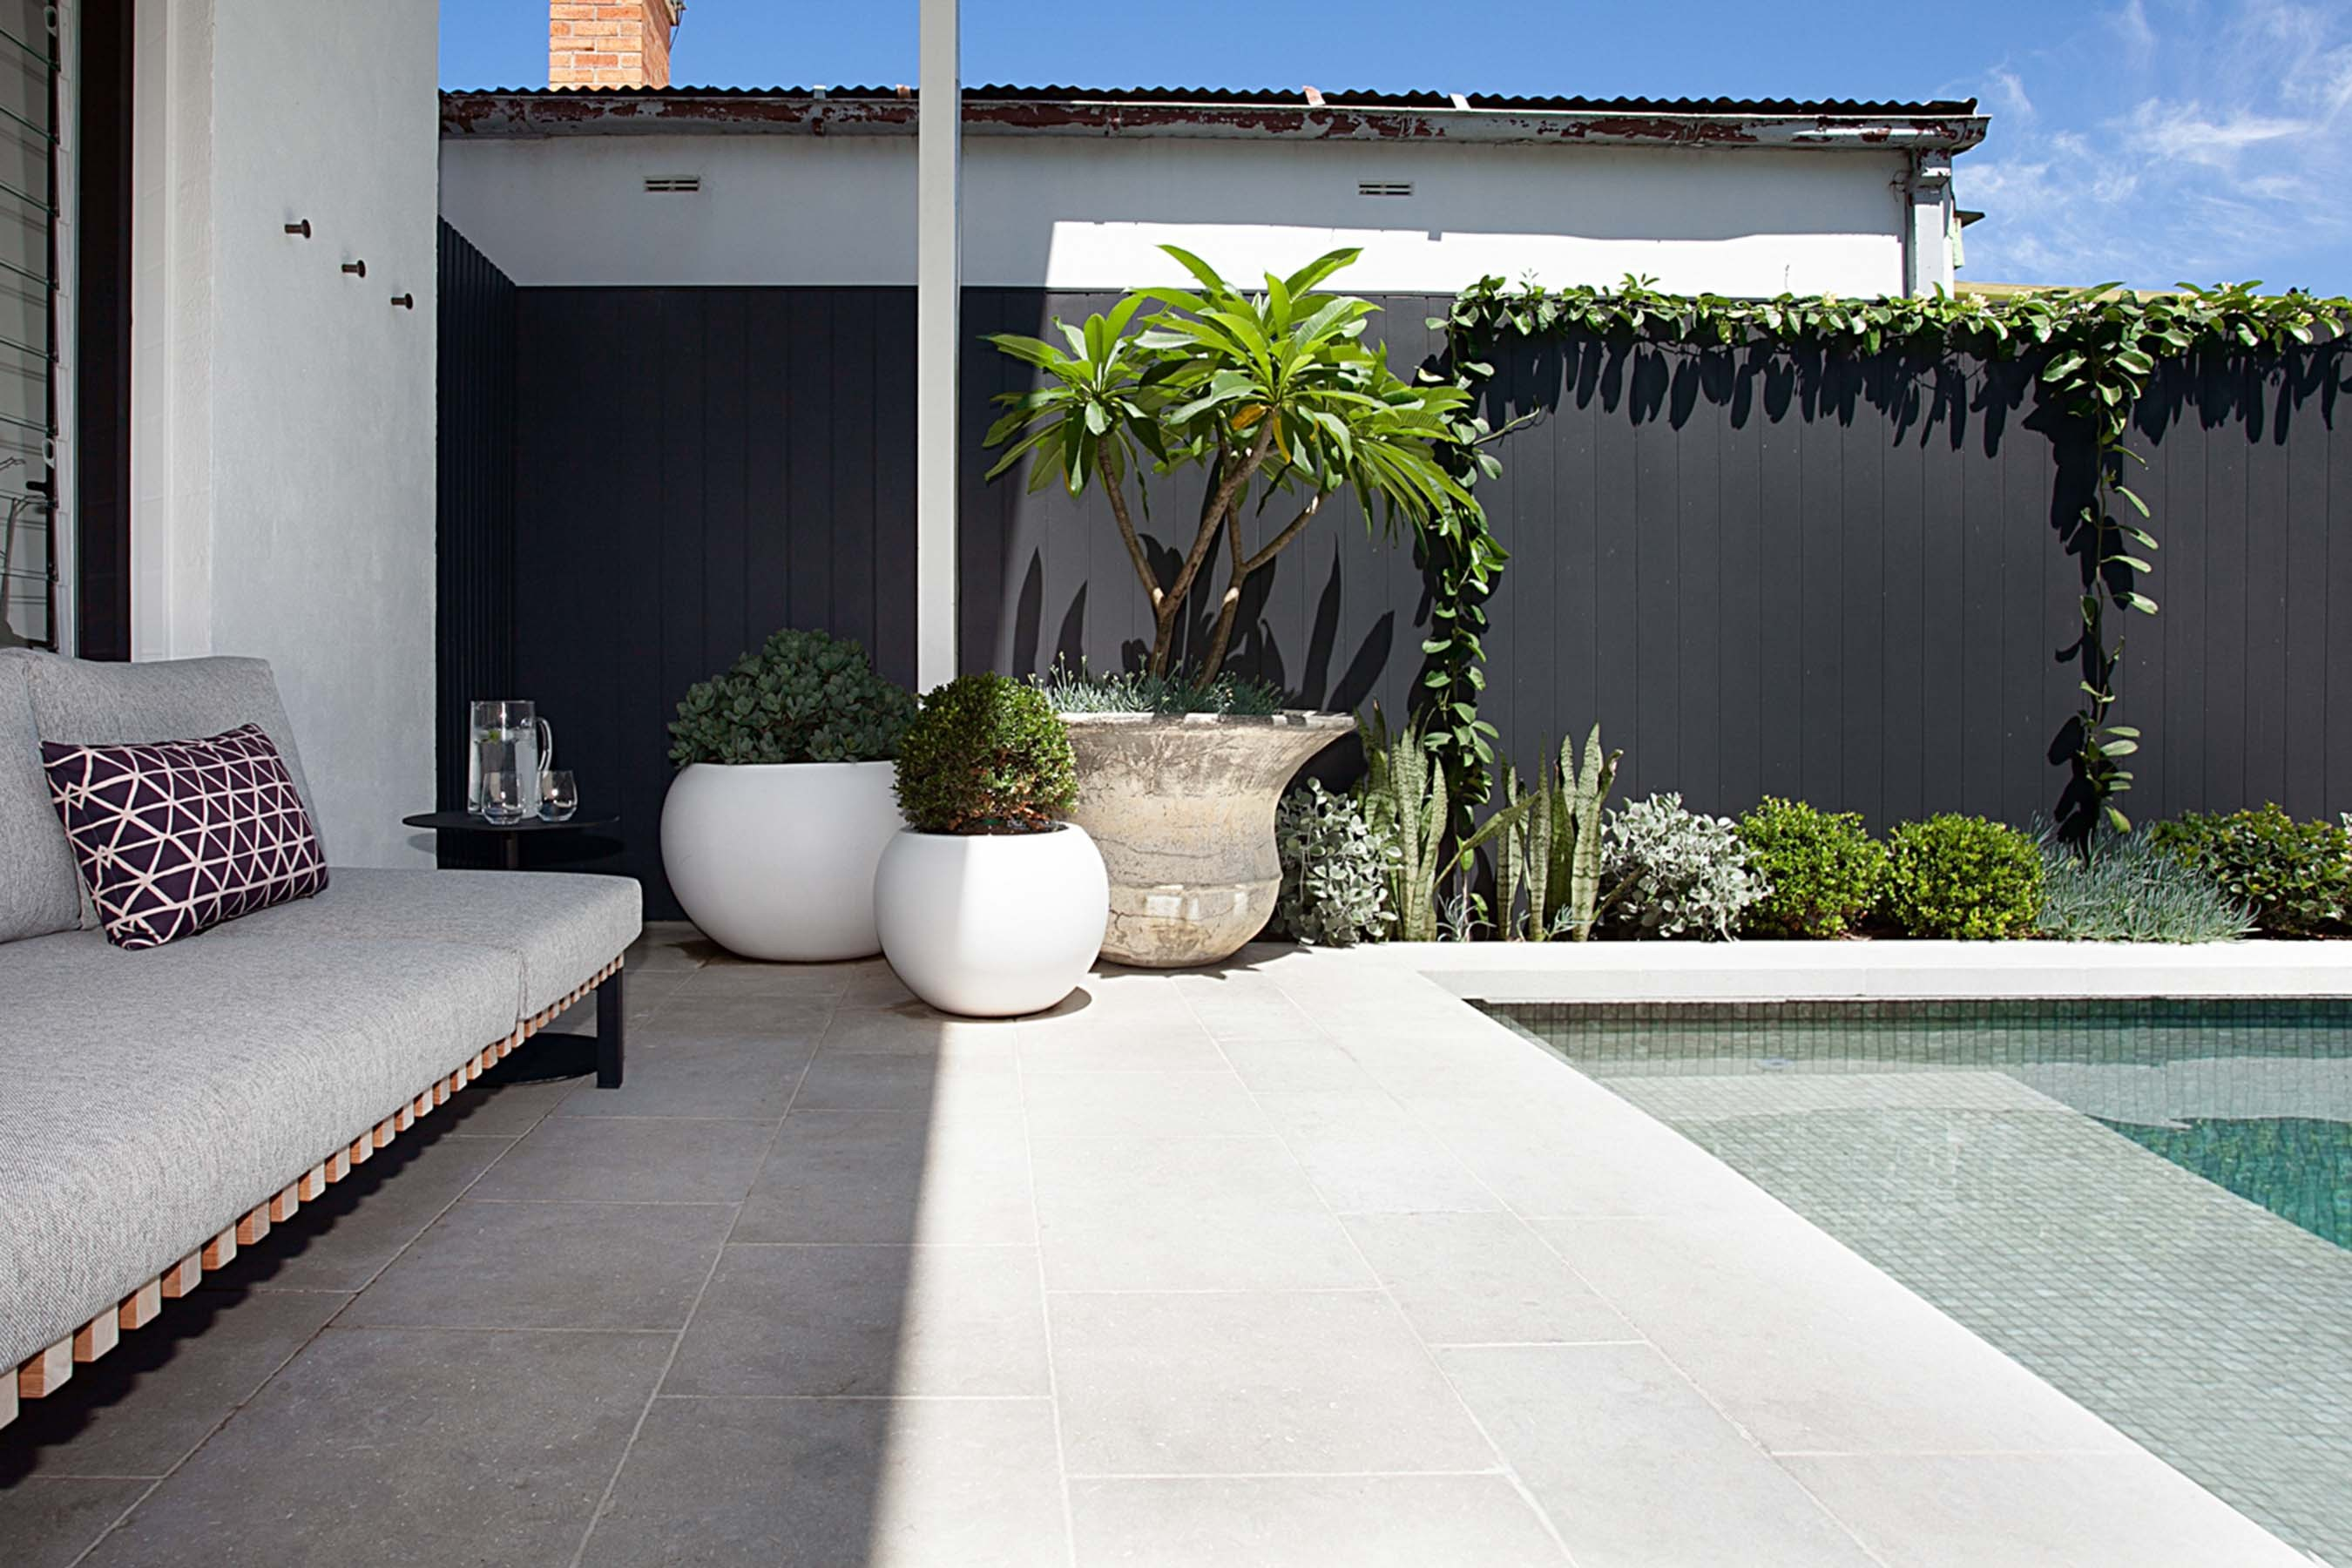 Stone-Pavers-and-Tiles-Outdoor Gallery olive-02